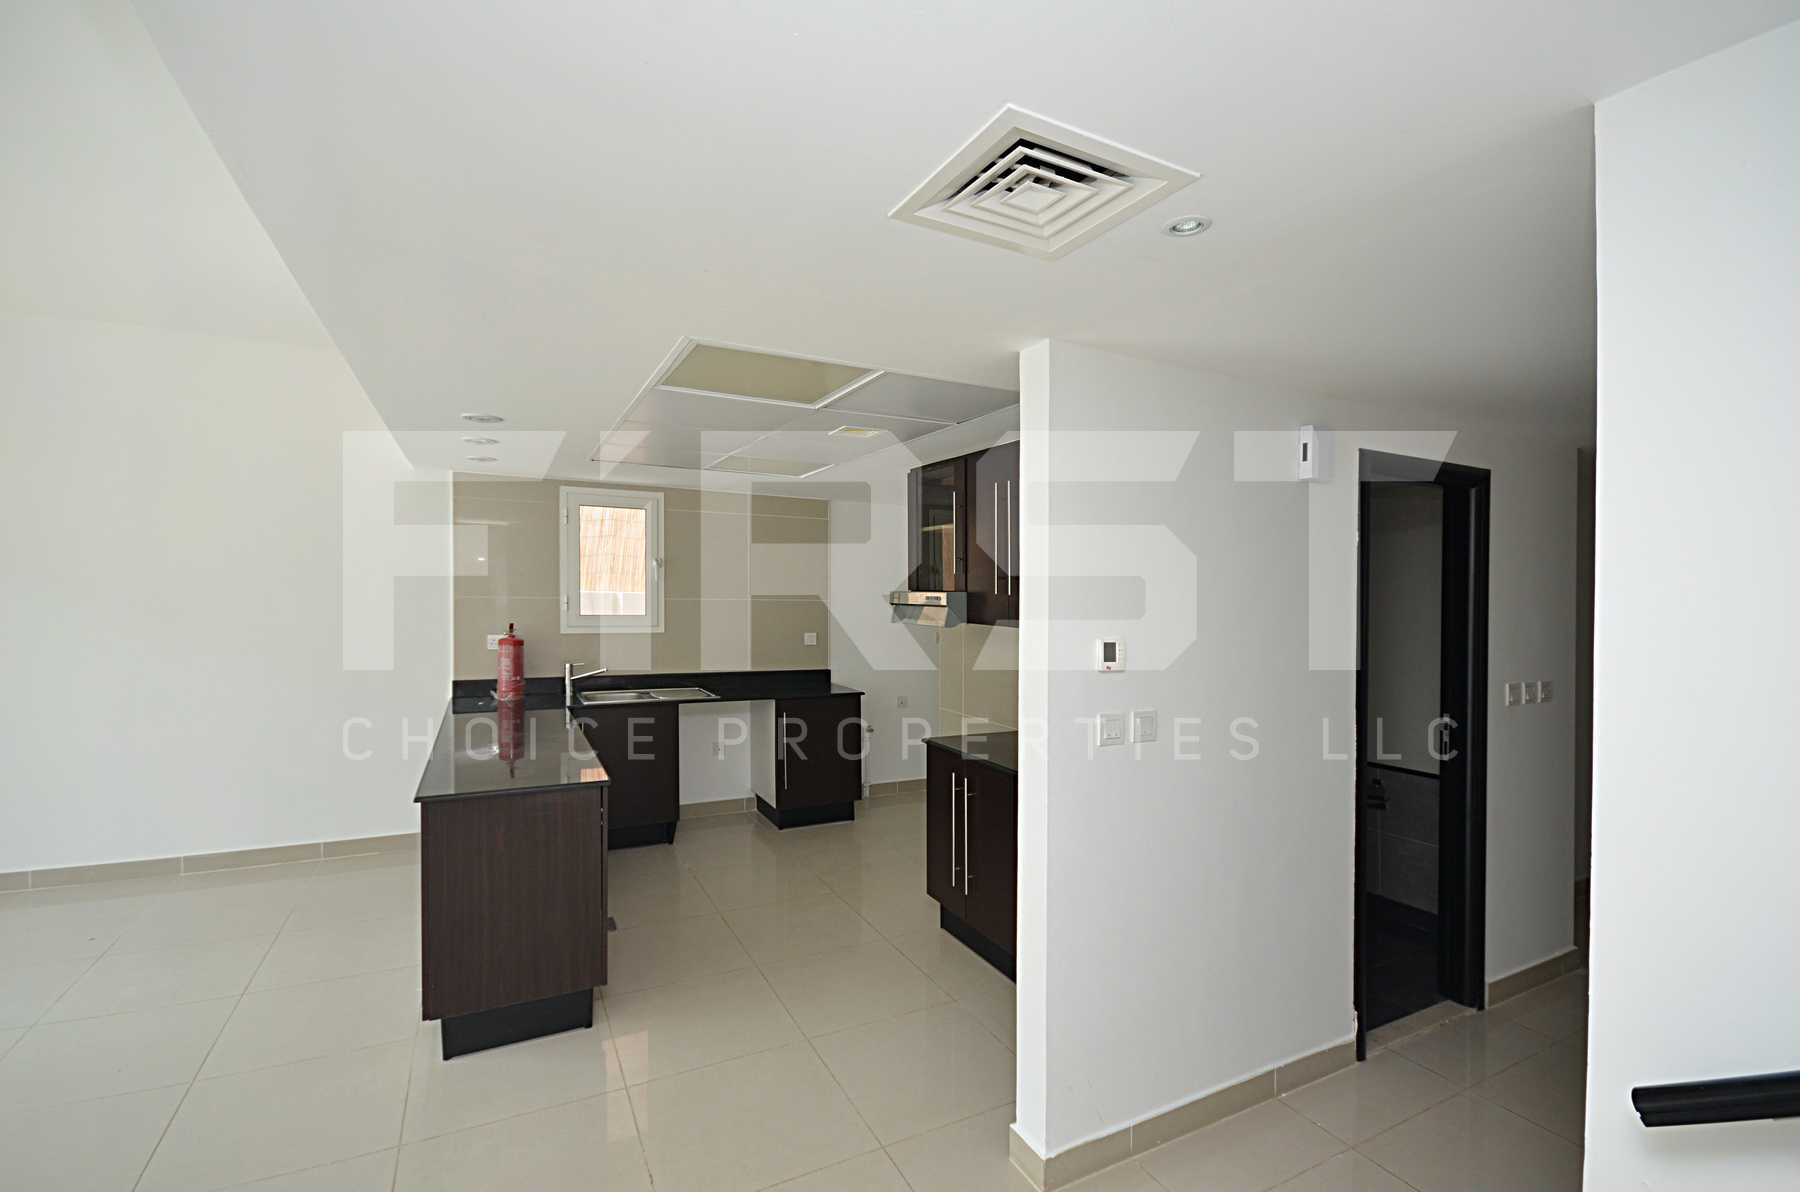 Internal Photo of 4 Bedroom Villa in Al Reef Villas Al Reef Abu Dhabi UAE 265.5 sq.m 2858 sq.ft (43).jpg